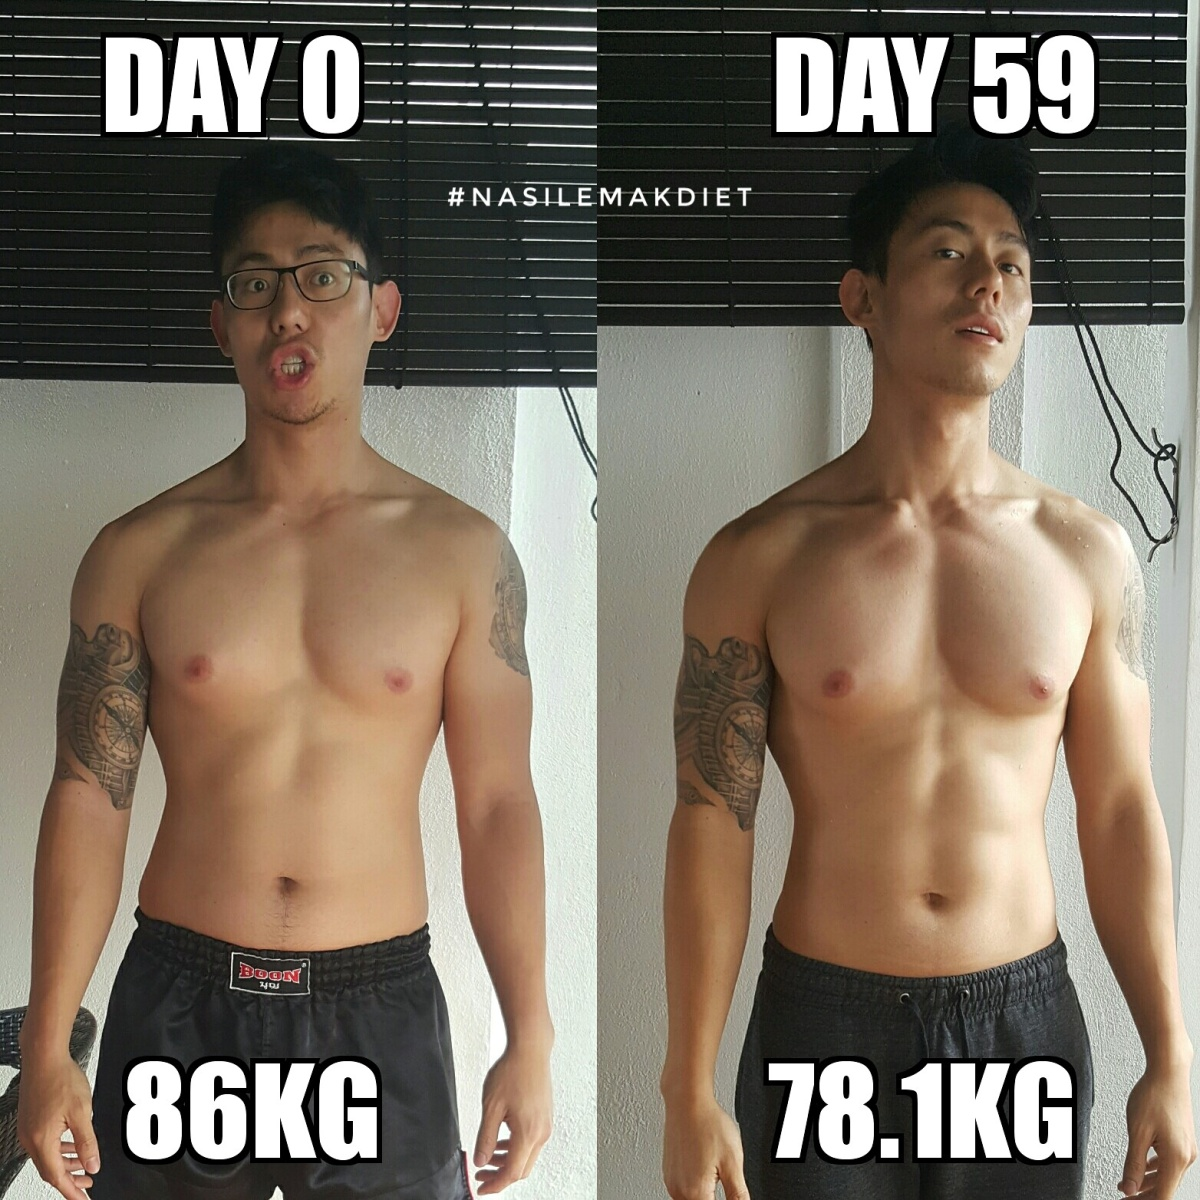 60 days of #NasiLemakDiet Later...